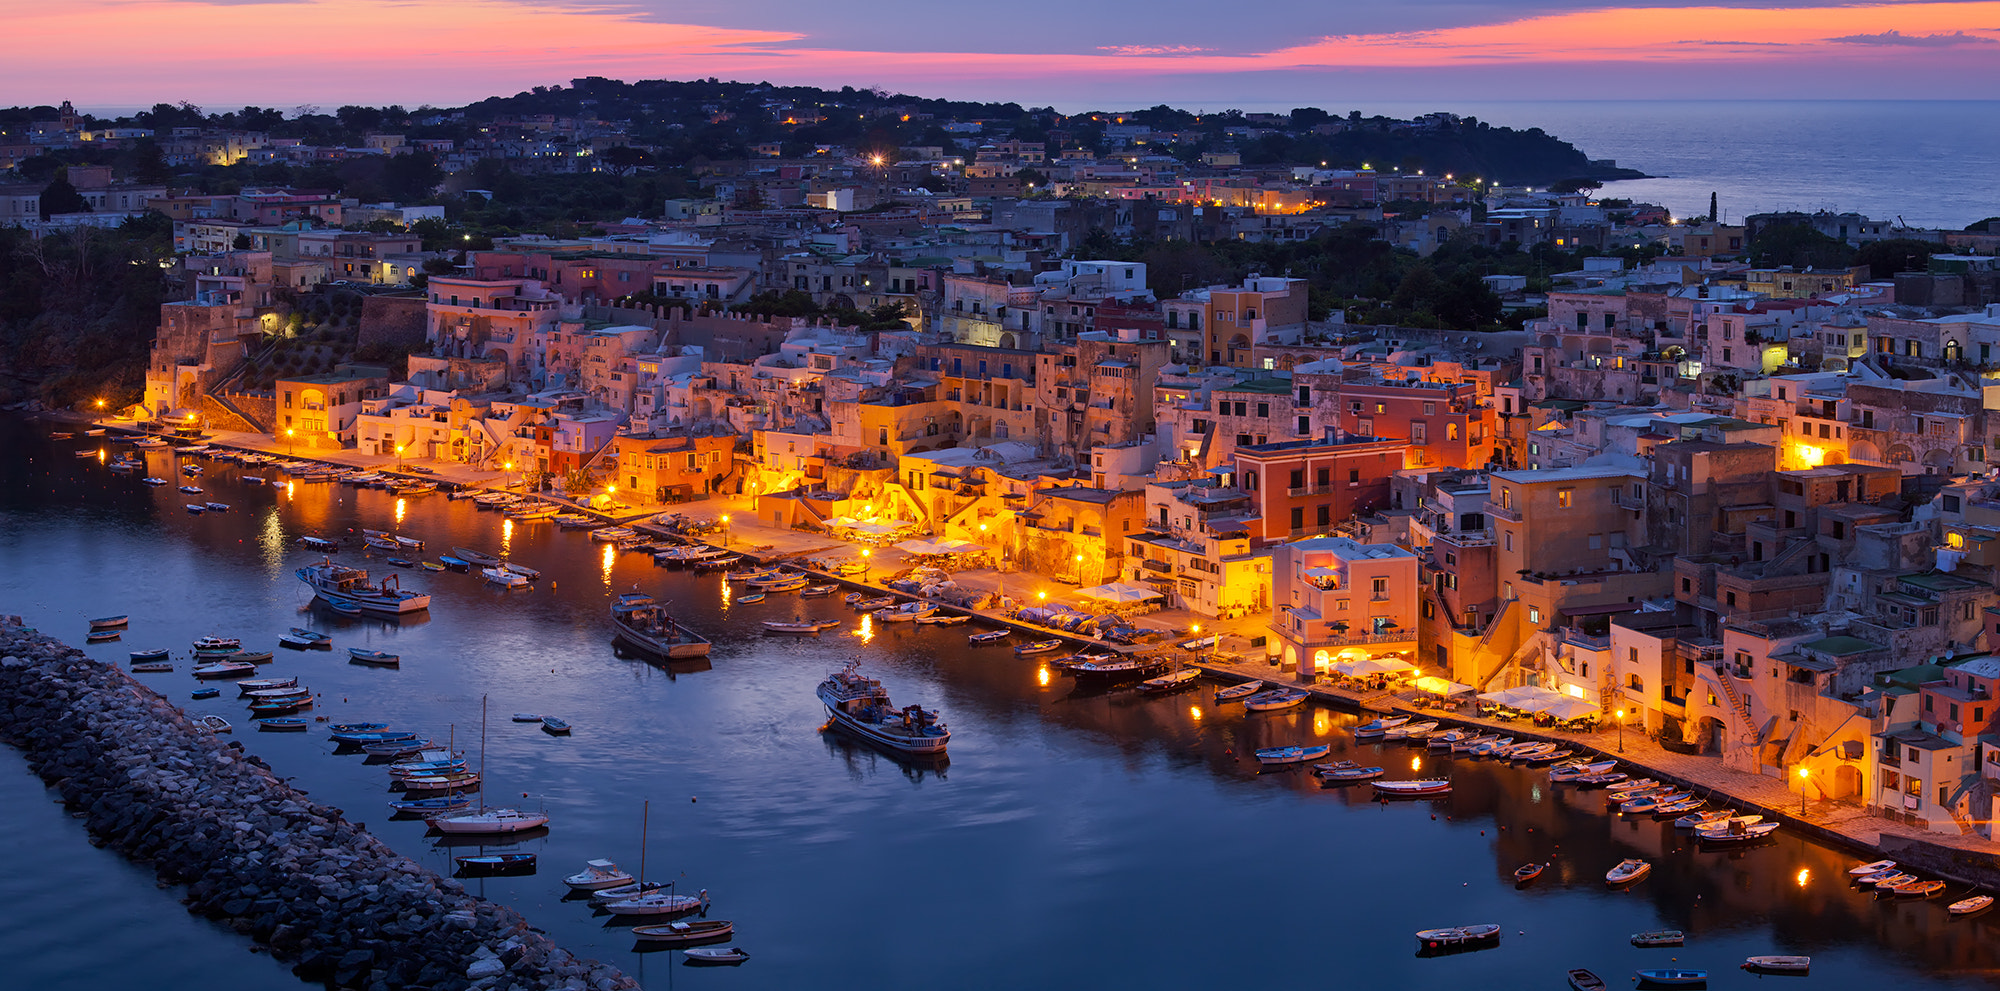 Photograph The Blue Hour on Procida by Jim Nilsen on 500px